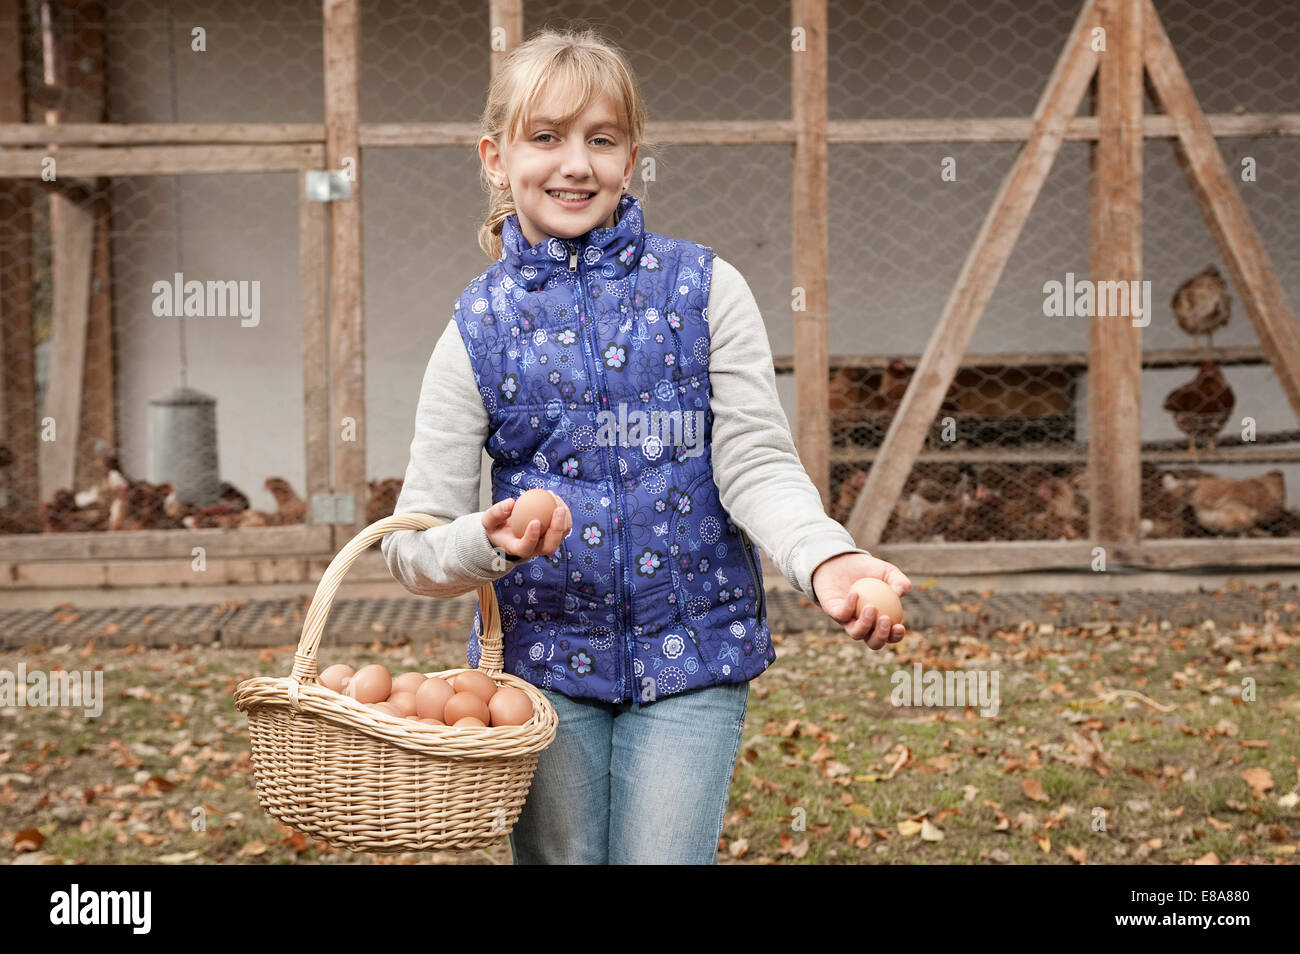 Blond girl holding basket with eggs on farm - Stock Image